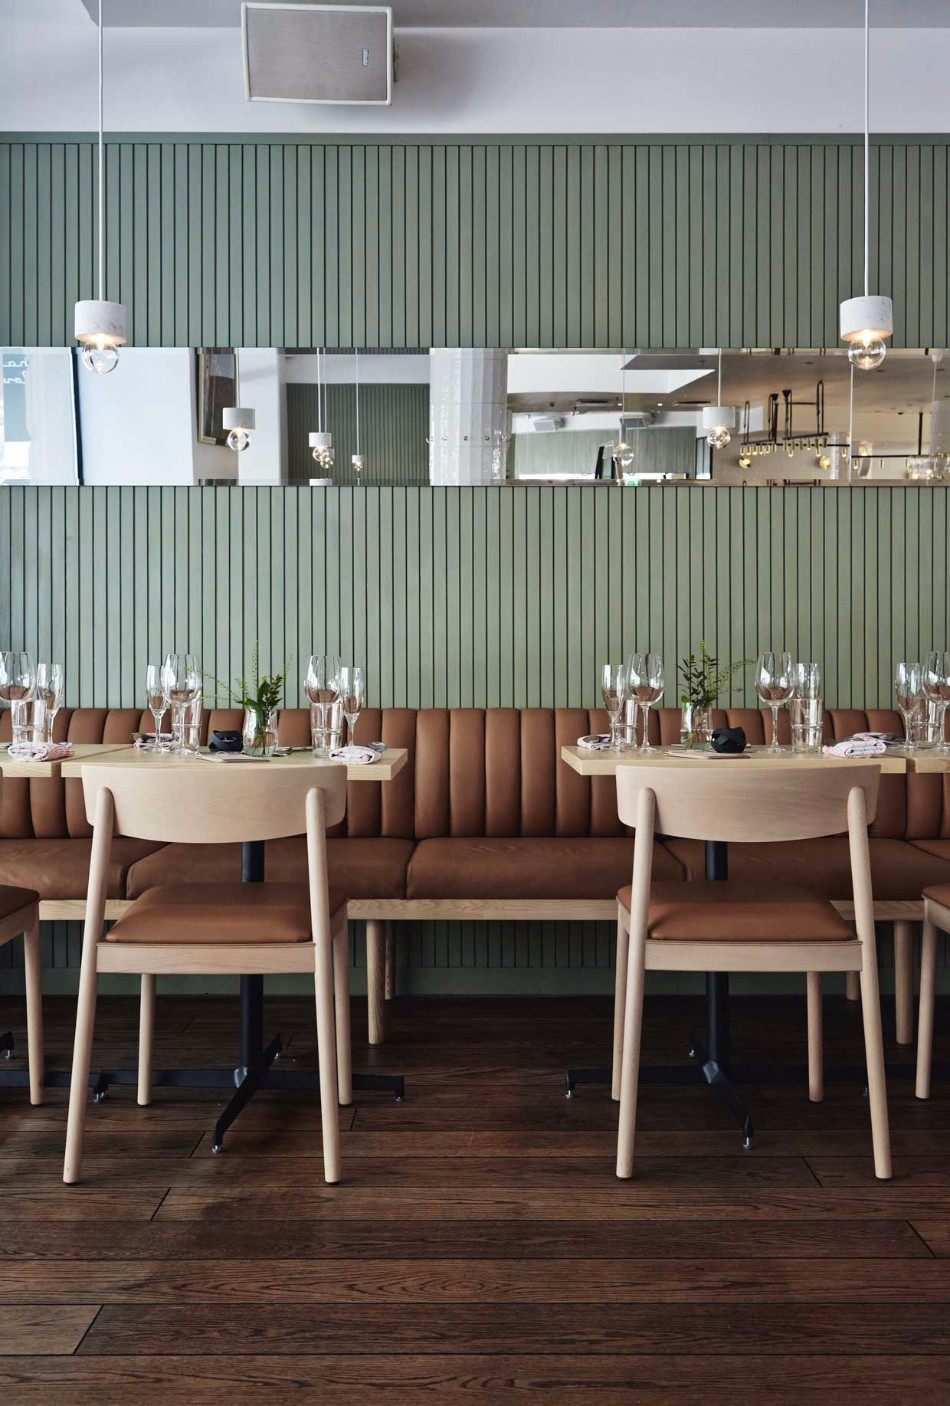 This Luxury Restaurant Design is Inspired by 1940s Kiosks | www.bocadolobo.com #restaurants #luxuryrestaurants #diningroom #diningarea #thediningroom #moderndiningtables #diningtables #tables #roomdesign #interiordesign #exclusivedesign #luxury @moderndiningtables